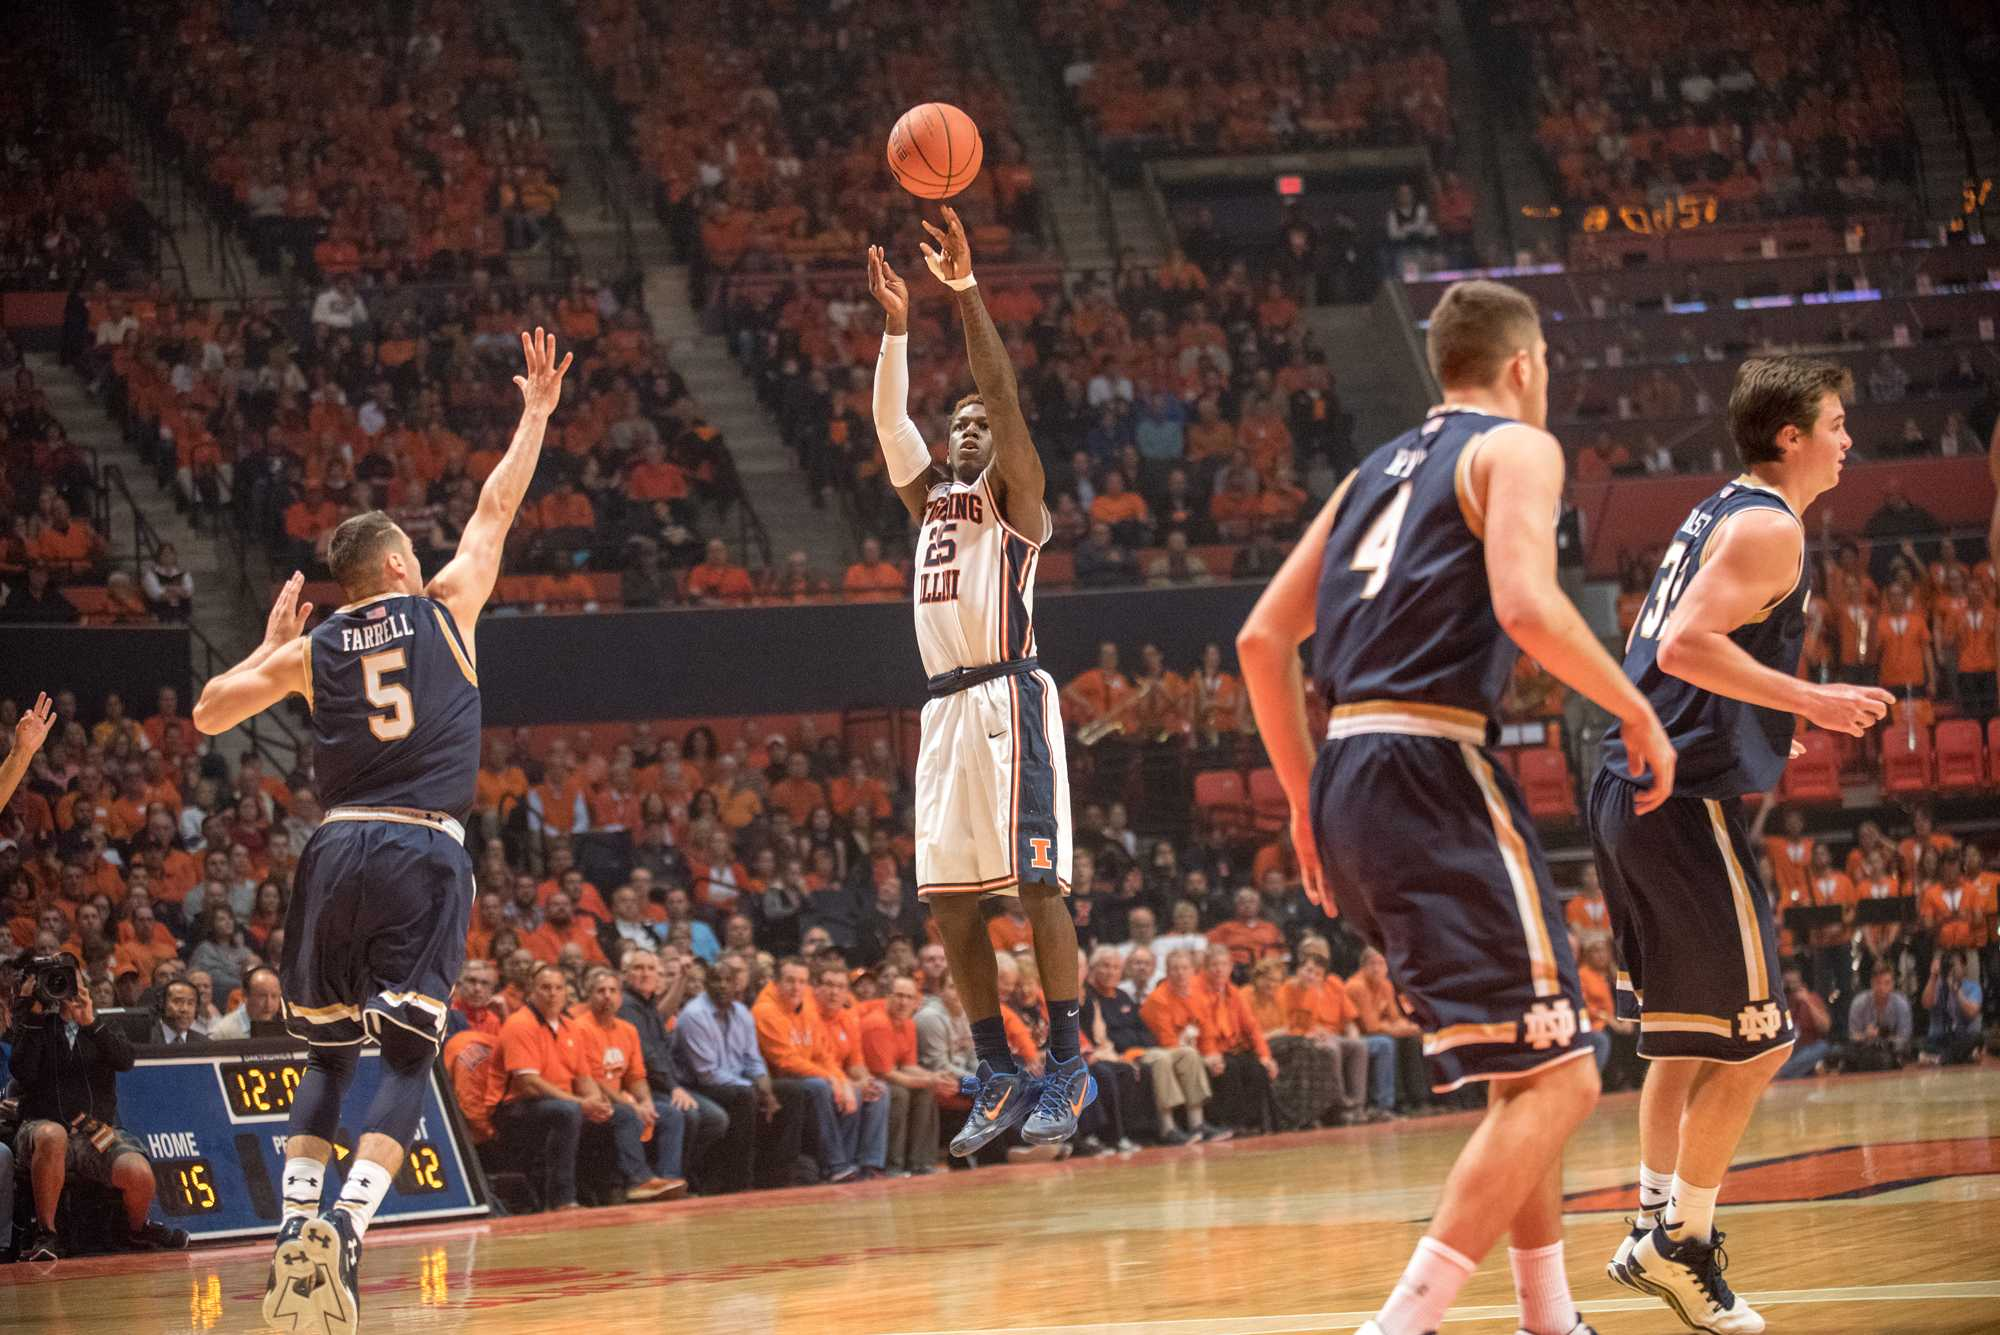 Illinois guard Kendrick Nunn takes a 3-pointer during the Illini's loss to Notre Dame on Dec. 1 at State Farm Center.